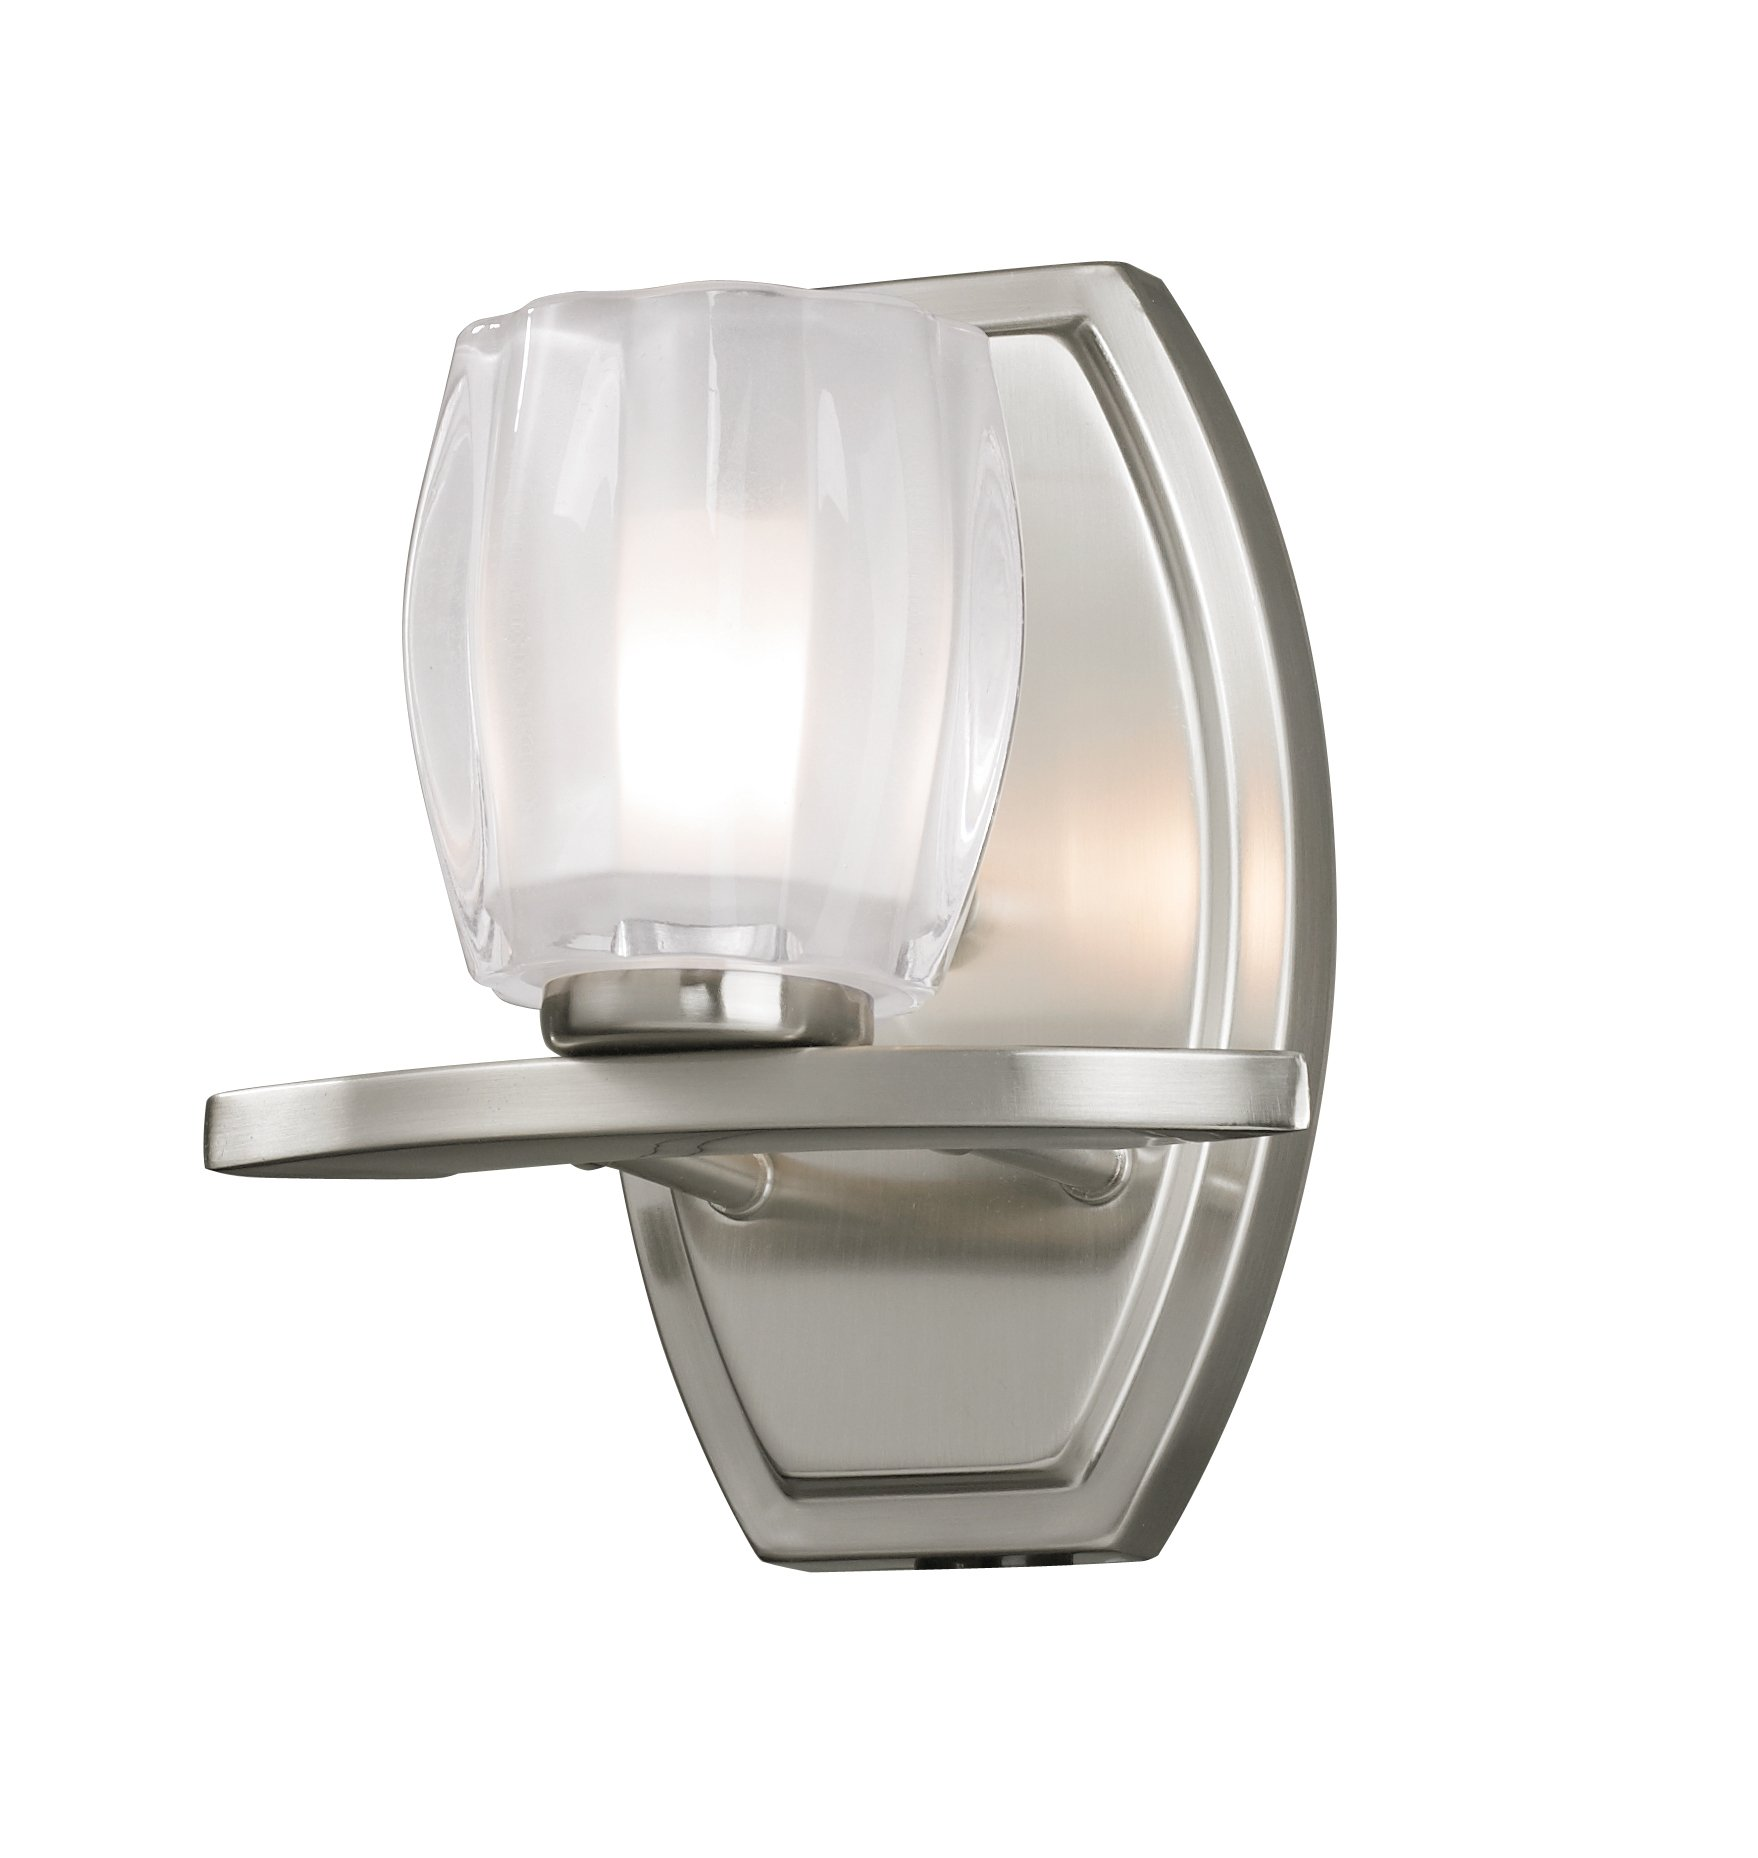 Z-Lite 3017-1V Haan One Light Vanity Light, Steel Frame, Brushed Nickel Finish and Matte Opal Glass Shade of Glass Material